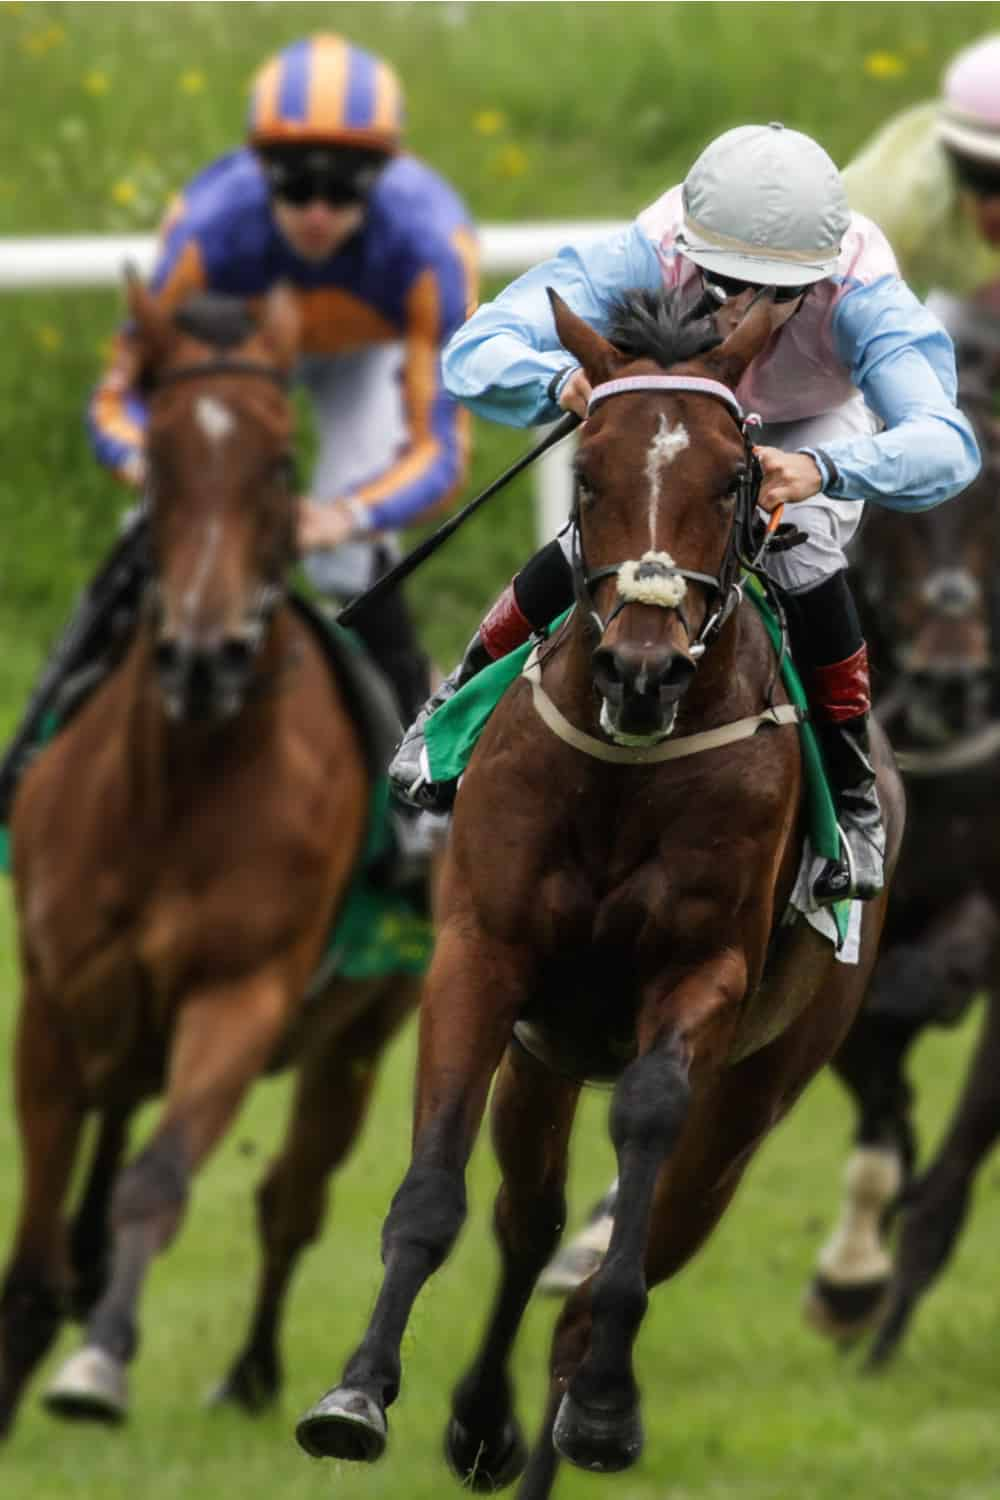 Ways for Racehorse Trainers to Make Money